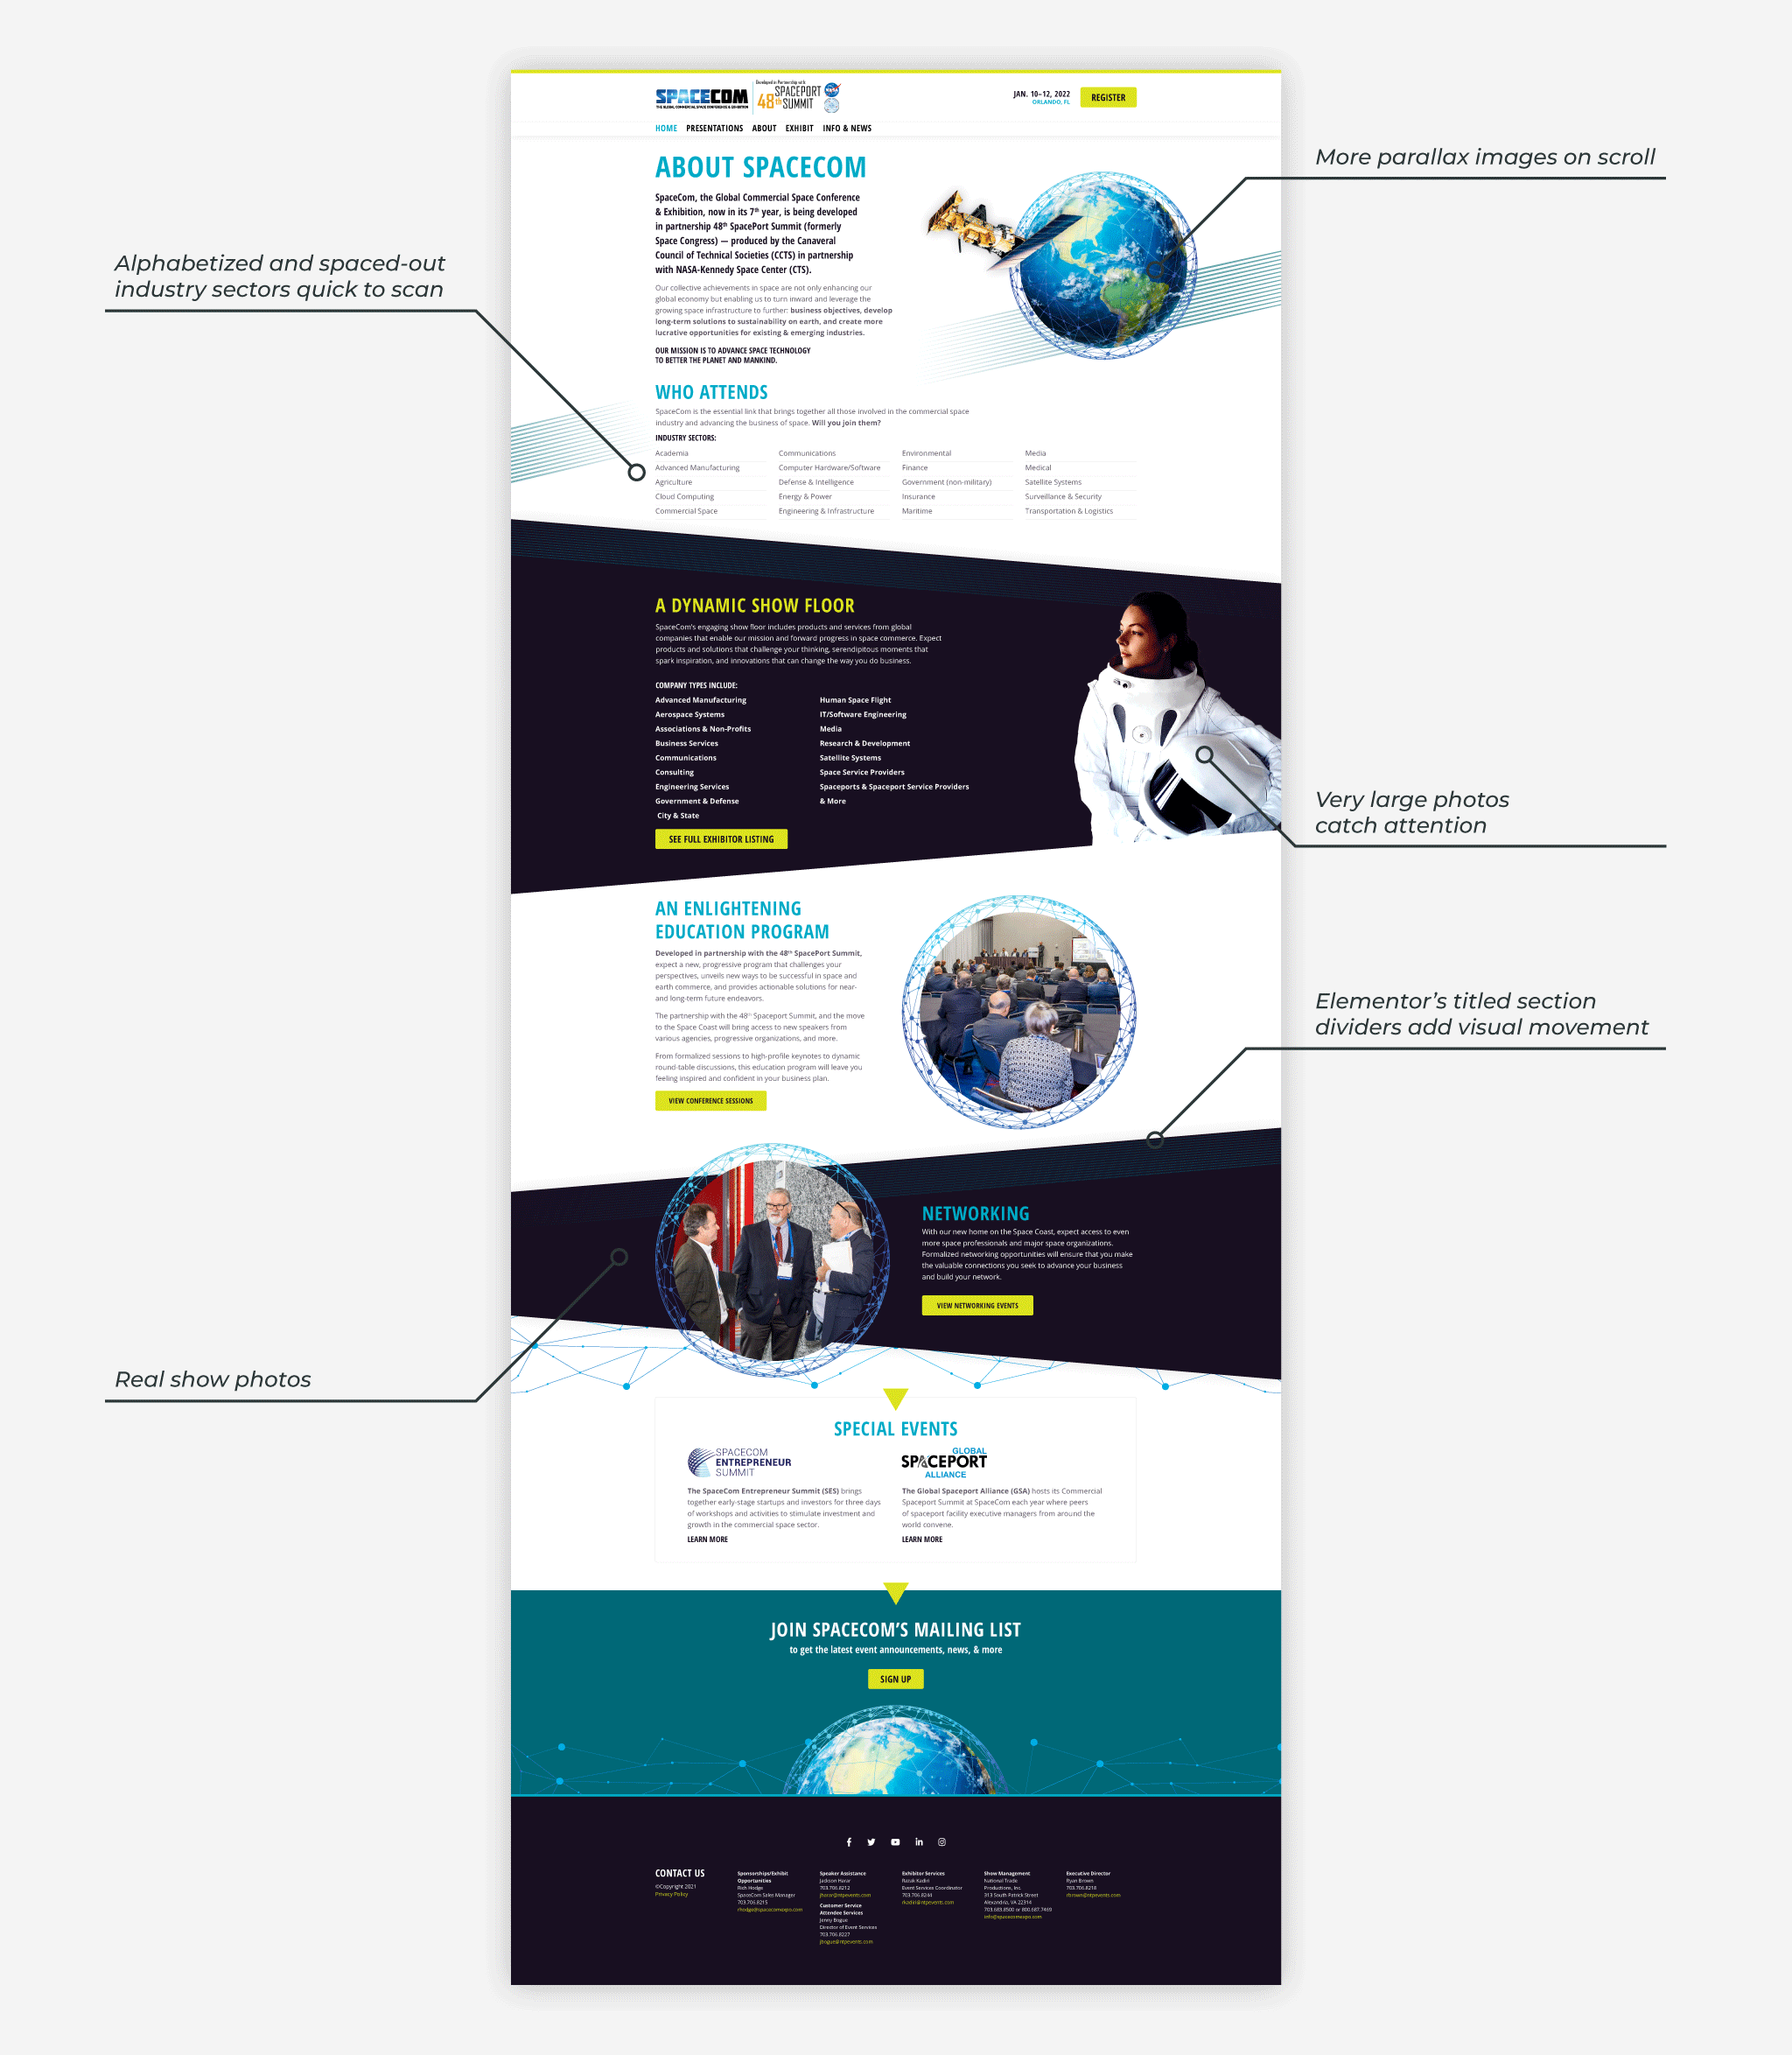 Infographic: the About page website design draws attention with parallax effects, large photos, and a clear text hierarchy.